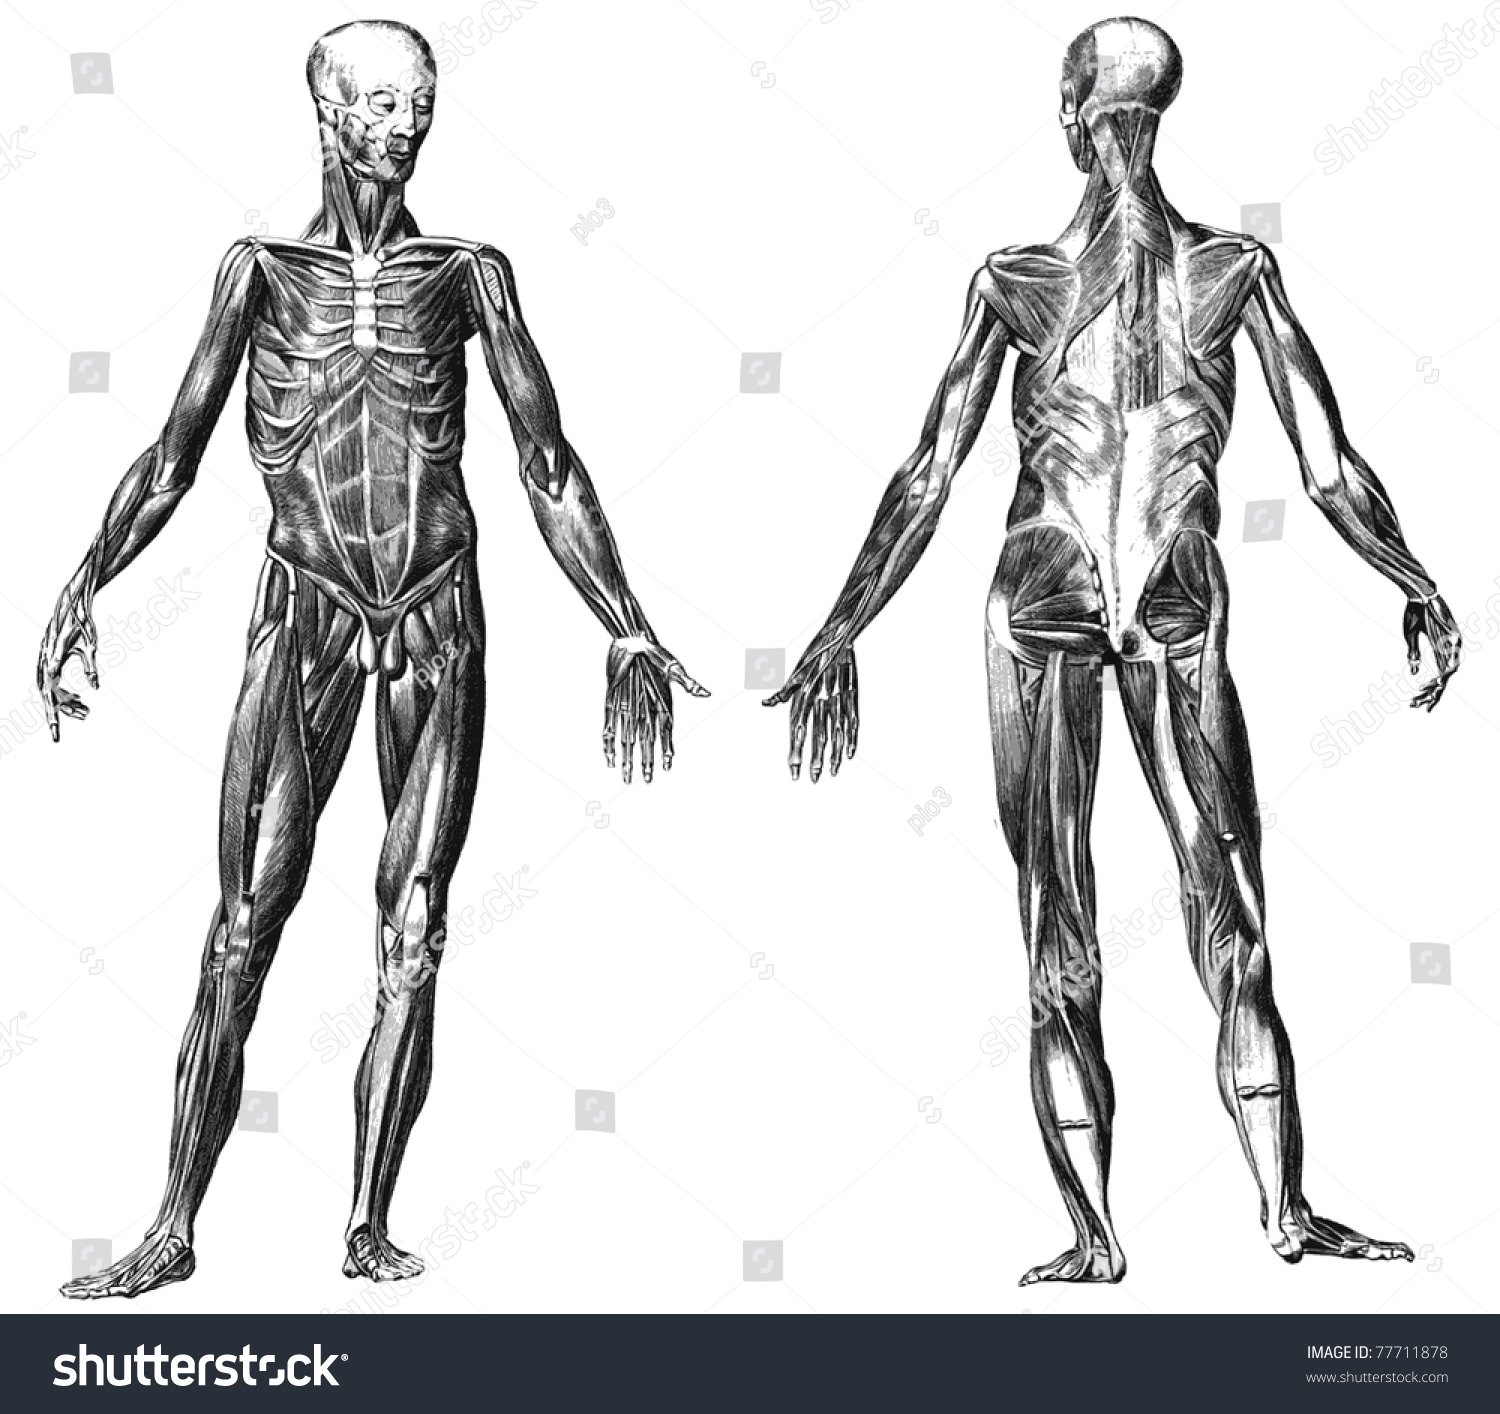 Engraving Body Muscles Illustrations Atlas Published Stock ...